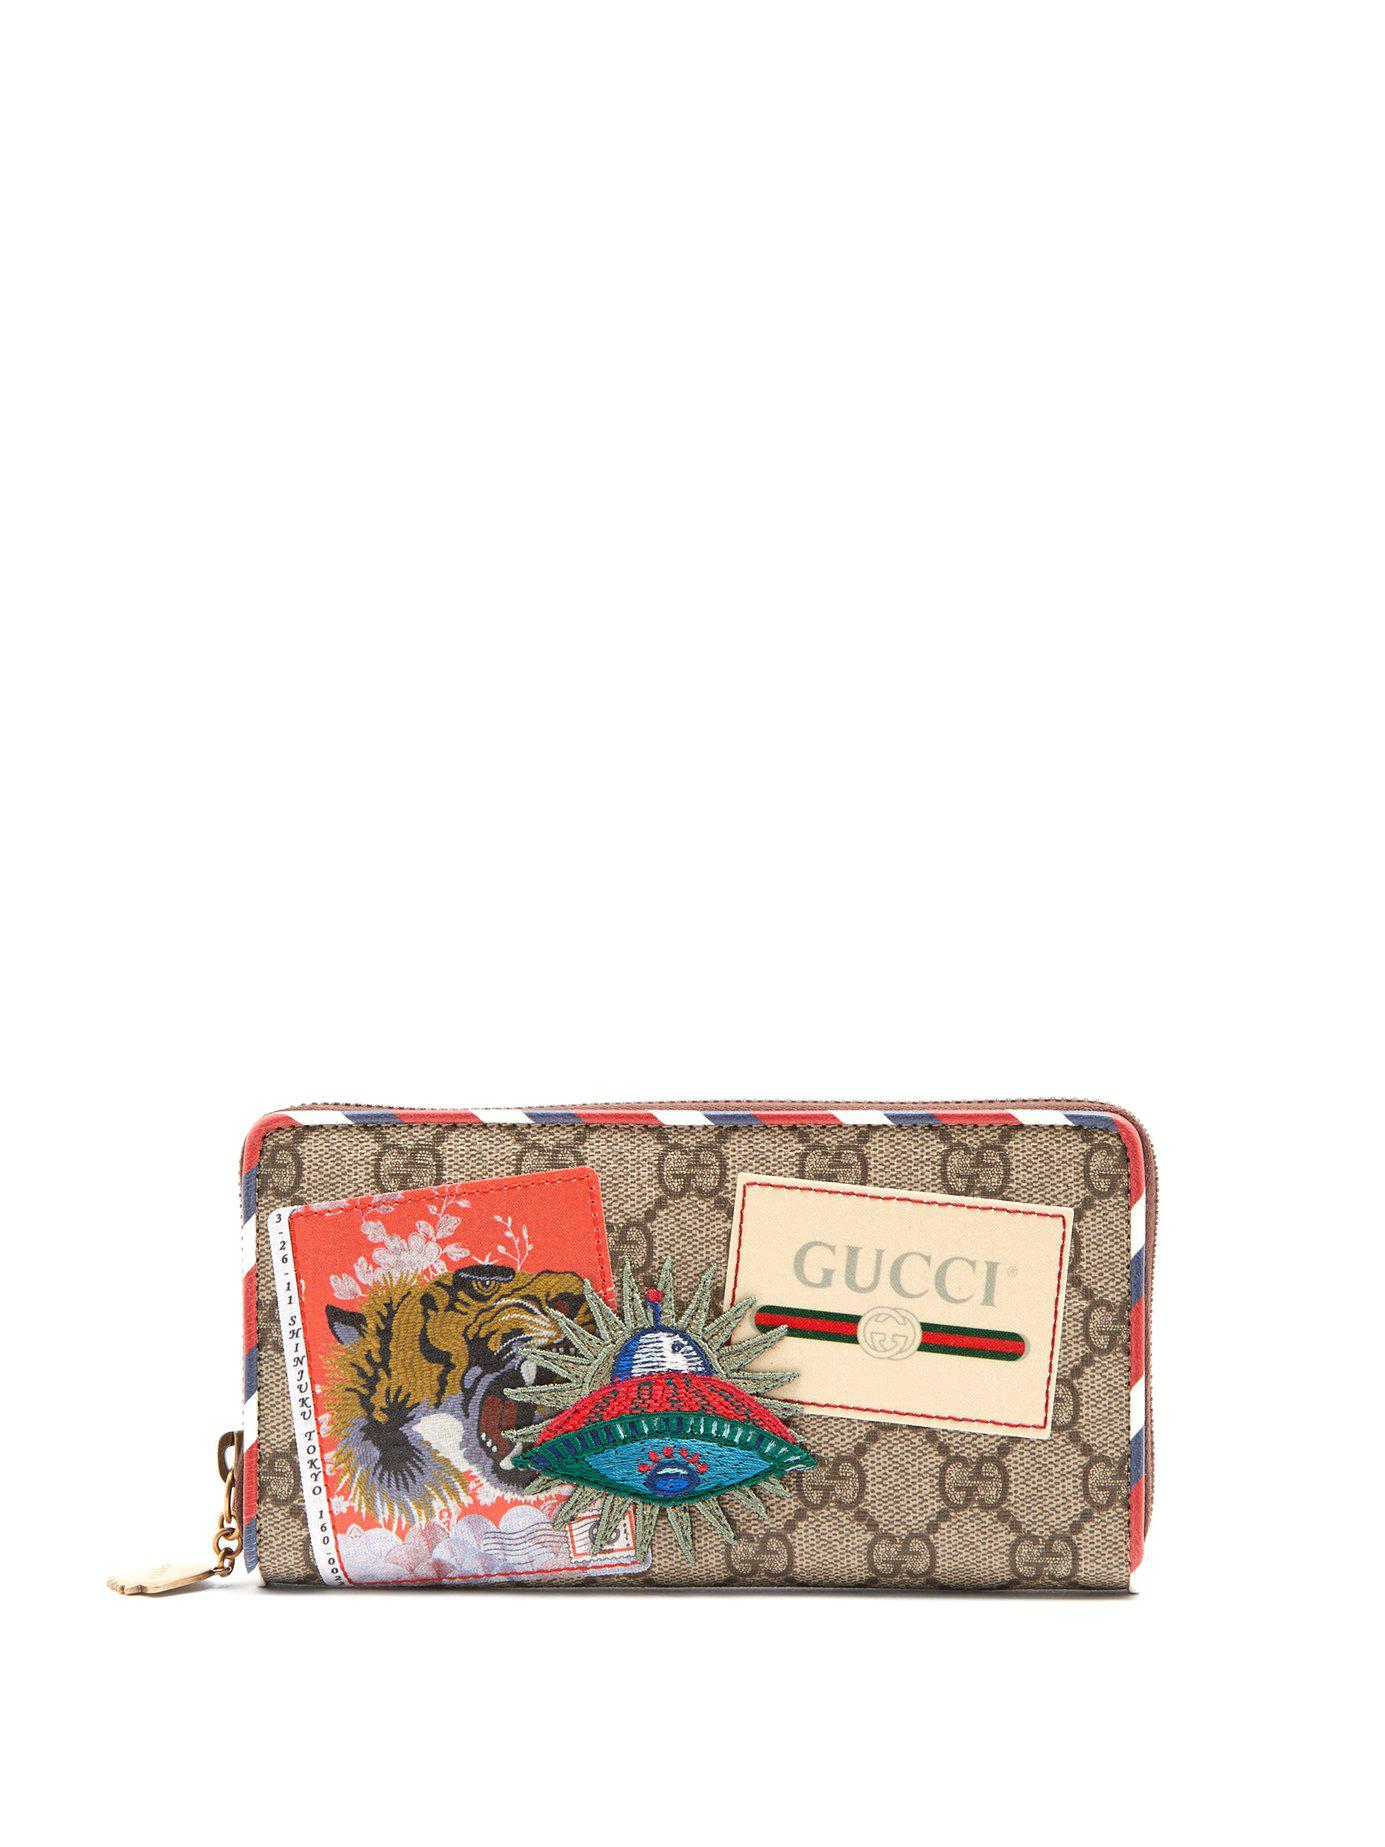 0dace47ed98 Gucci - Brown Courrier Gg Supreme Zip-around Wallet for Men - Lyst. View  fullscreen